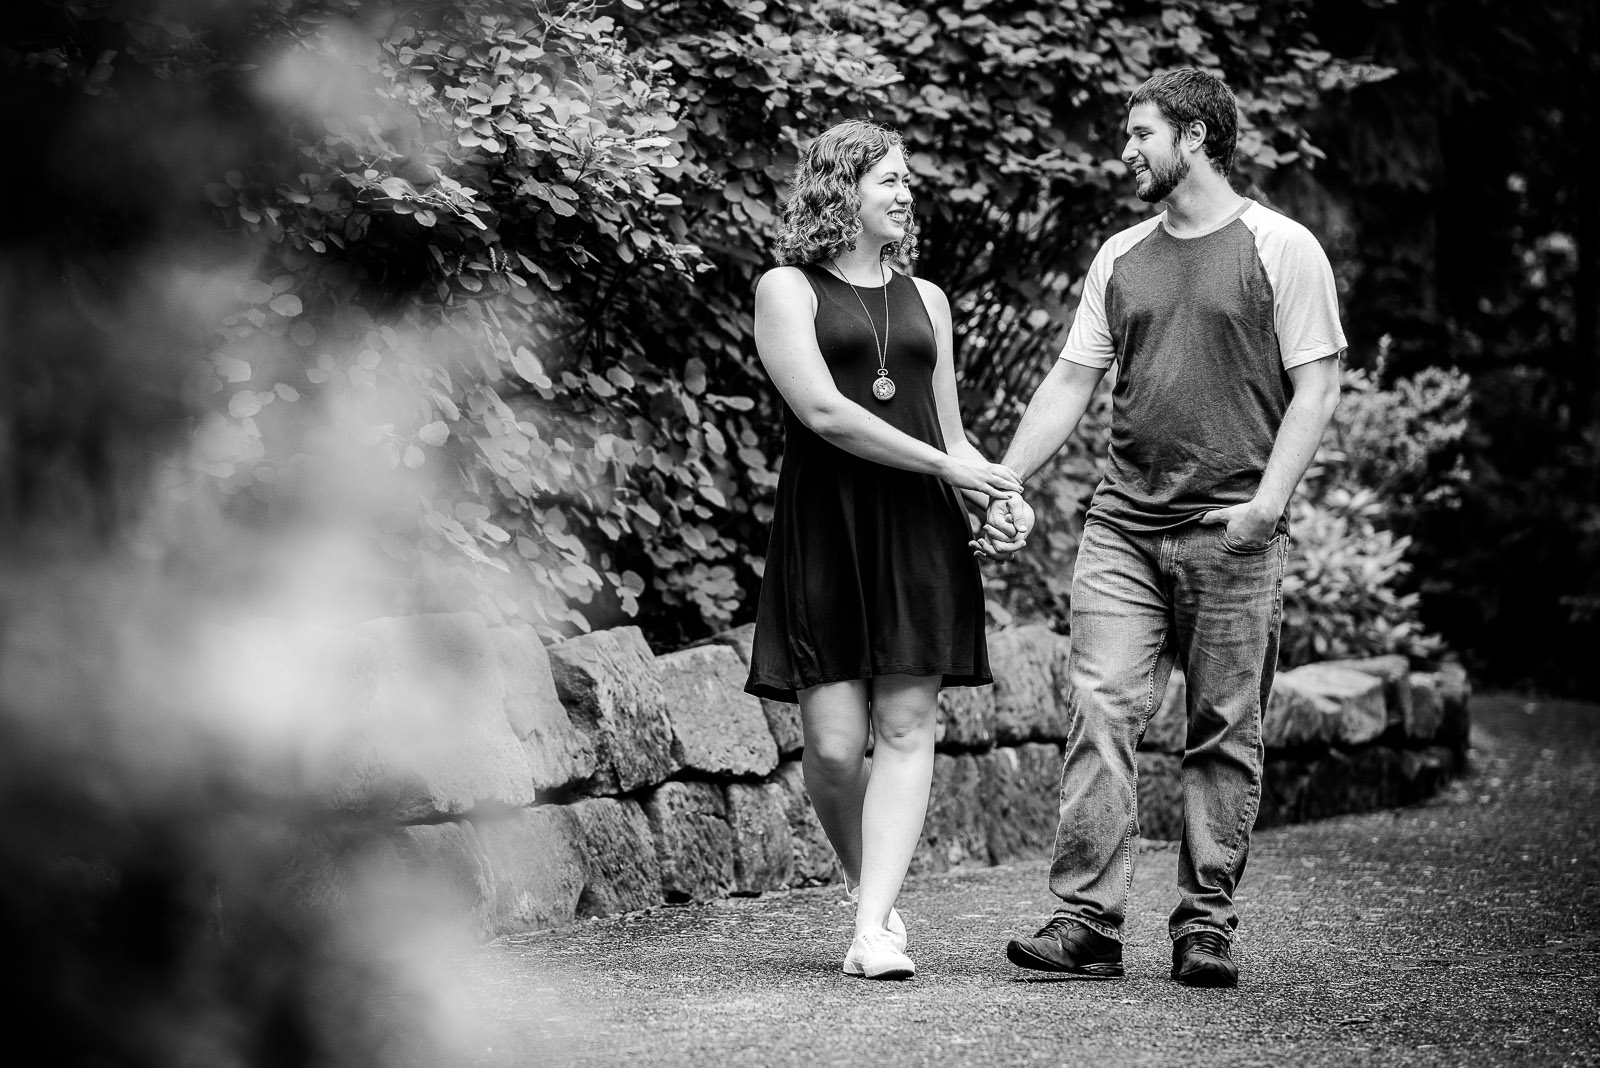 Eric_and_Christy_Photography_Blog_Engagement_Andrea_Clint-11